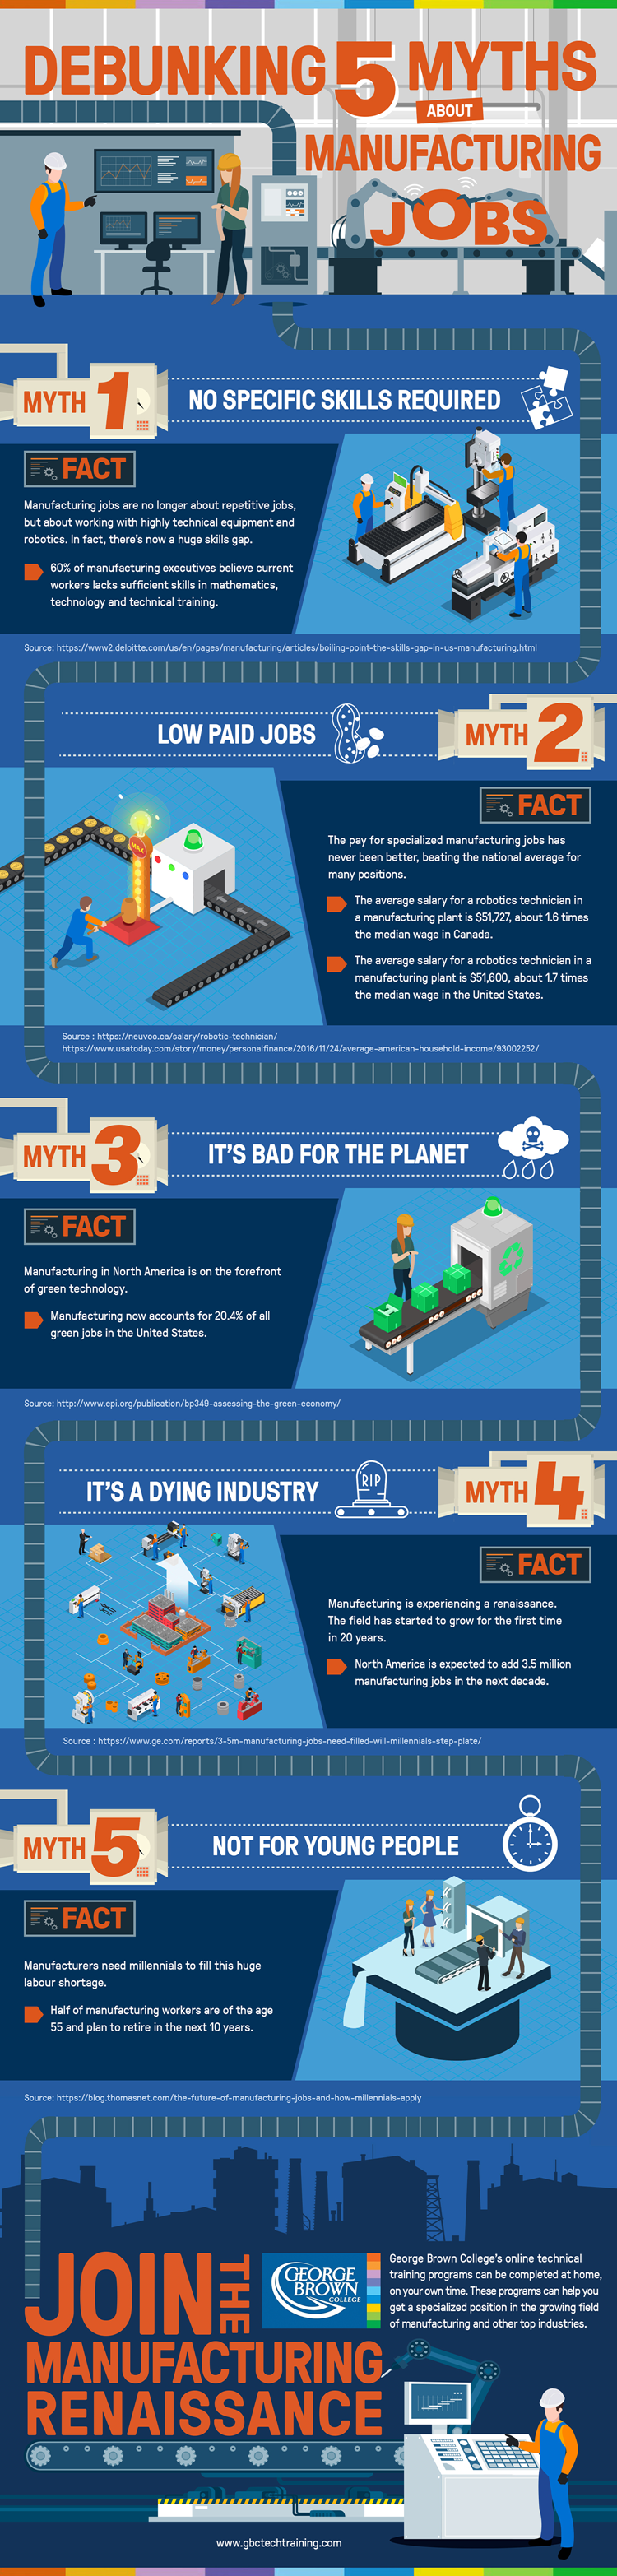 Debunking 5 Myths About Manufacturing Jobs